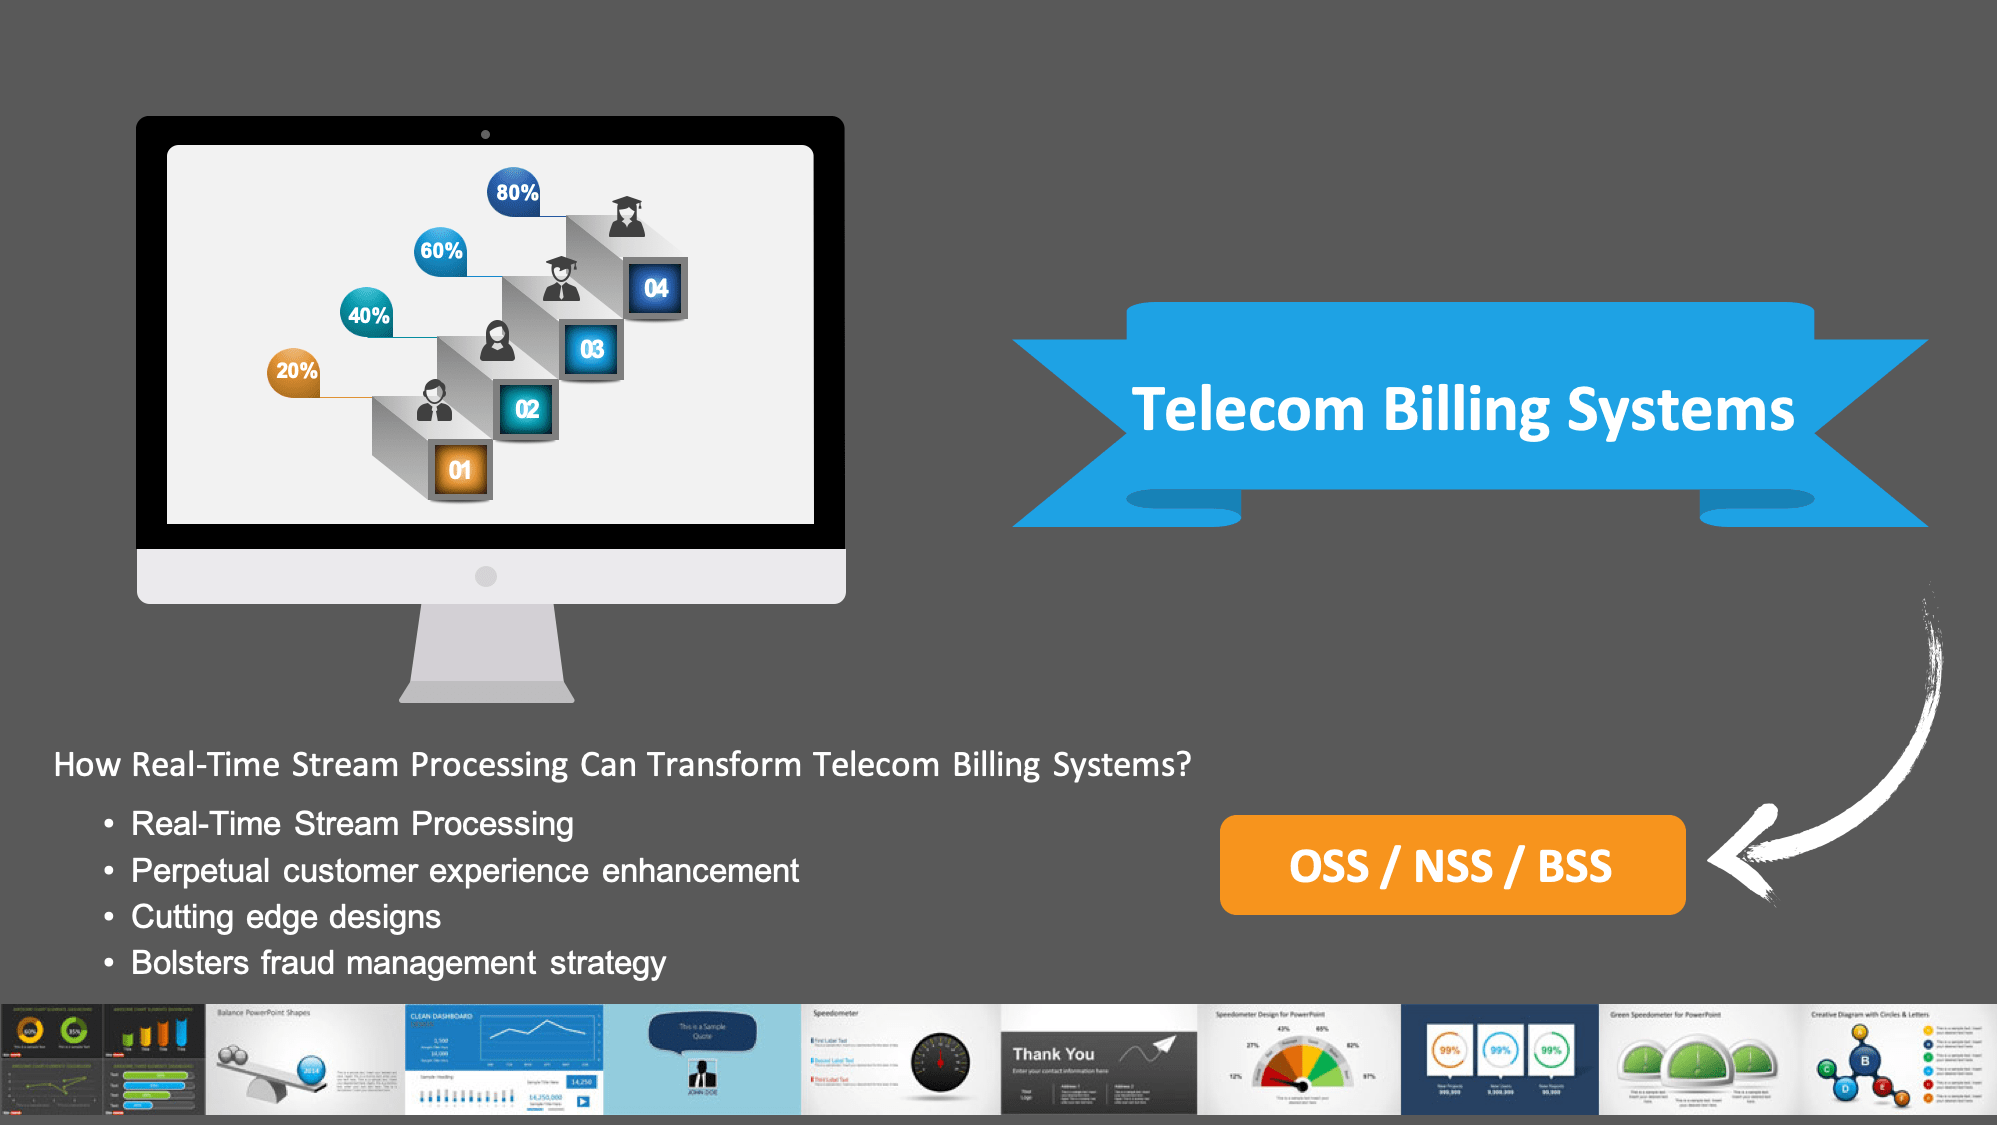 How Real-Time Stream Processing Can Transform Telecom Billing Systems?